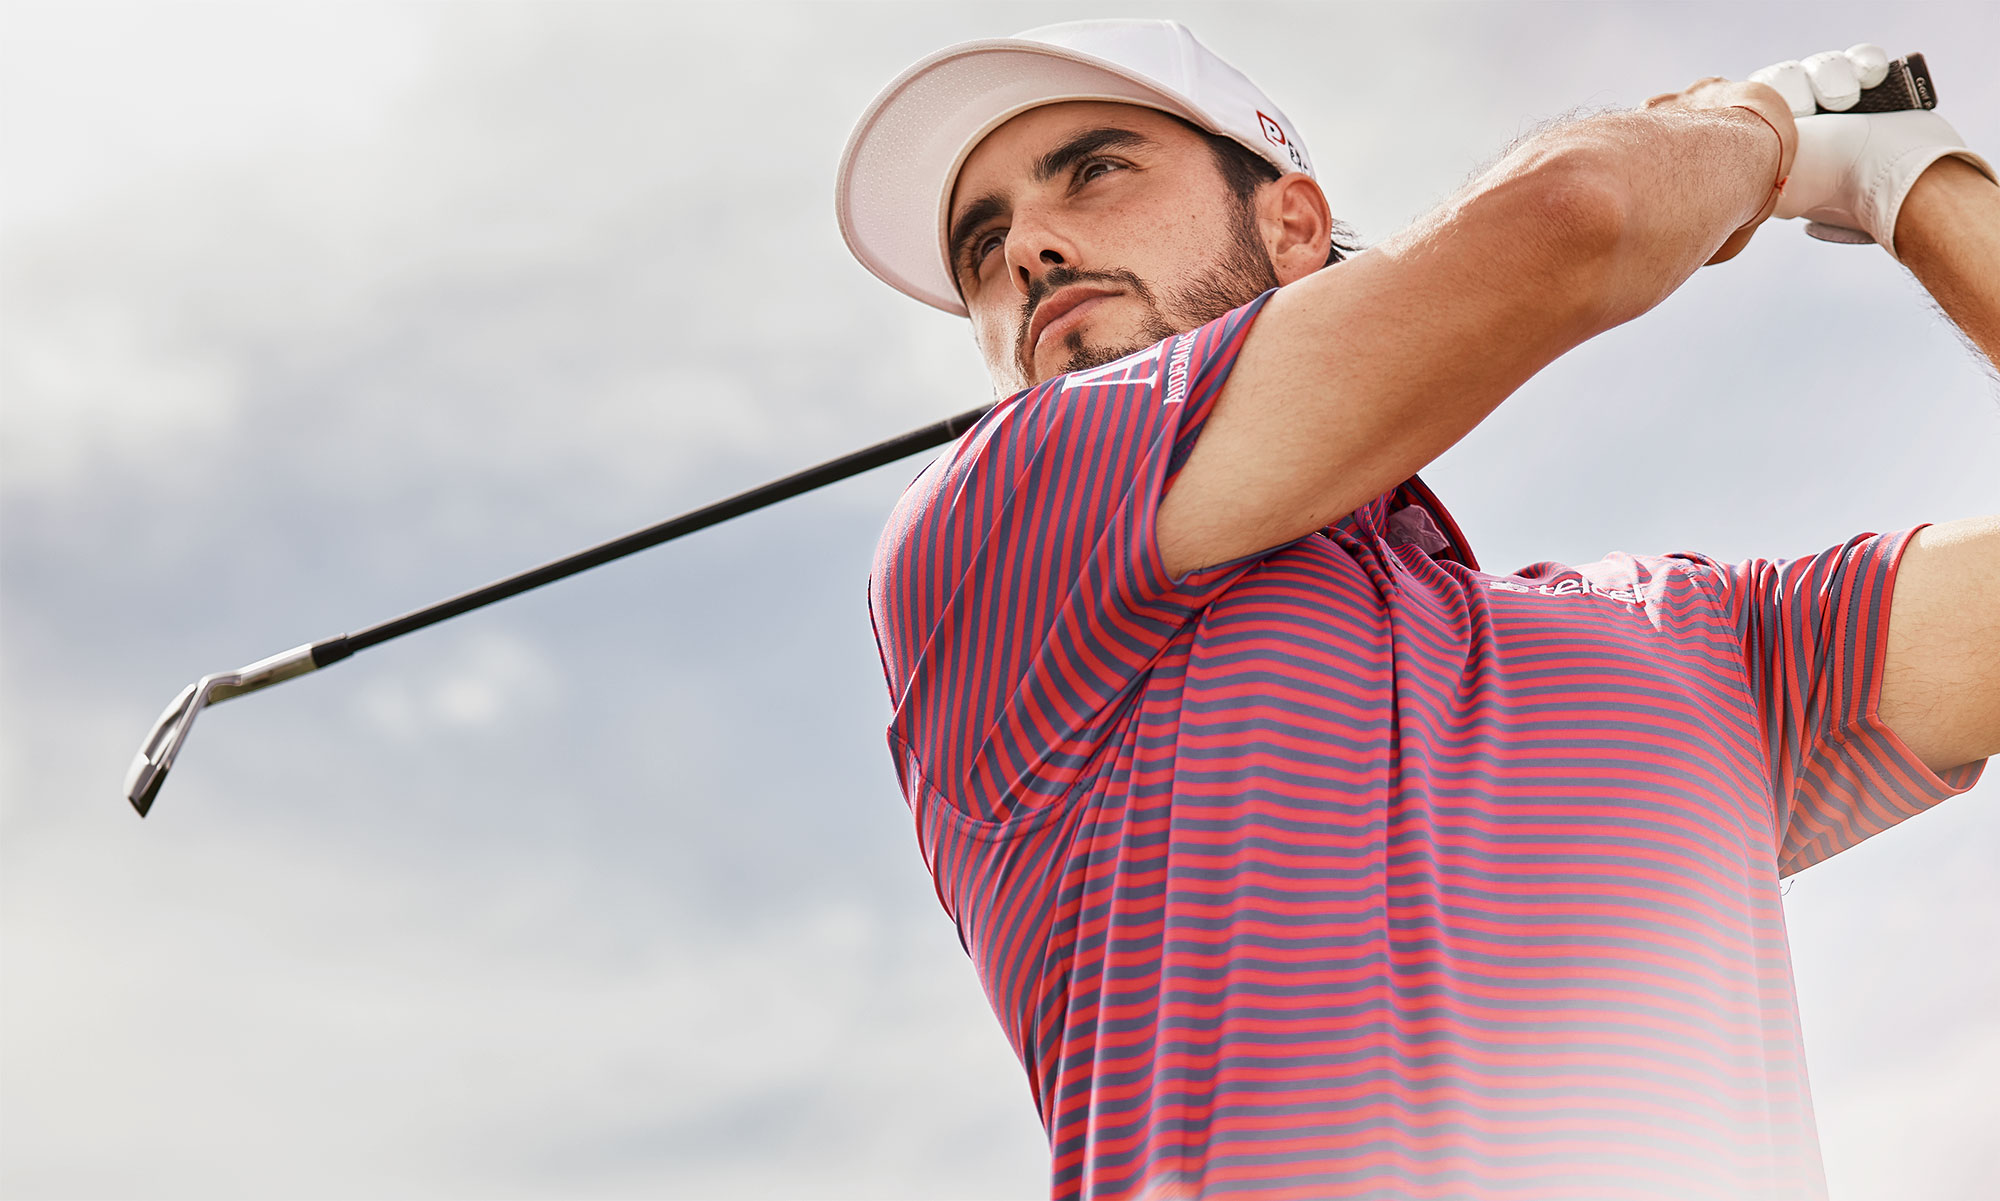 Abraham Ancer - Miura Golf  - Stephen Denton Photography -  Los Angeles, CA Commercial Photographer